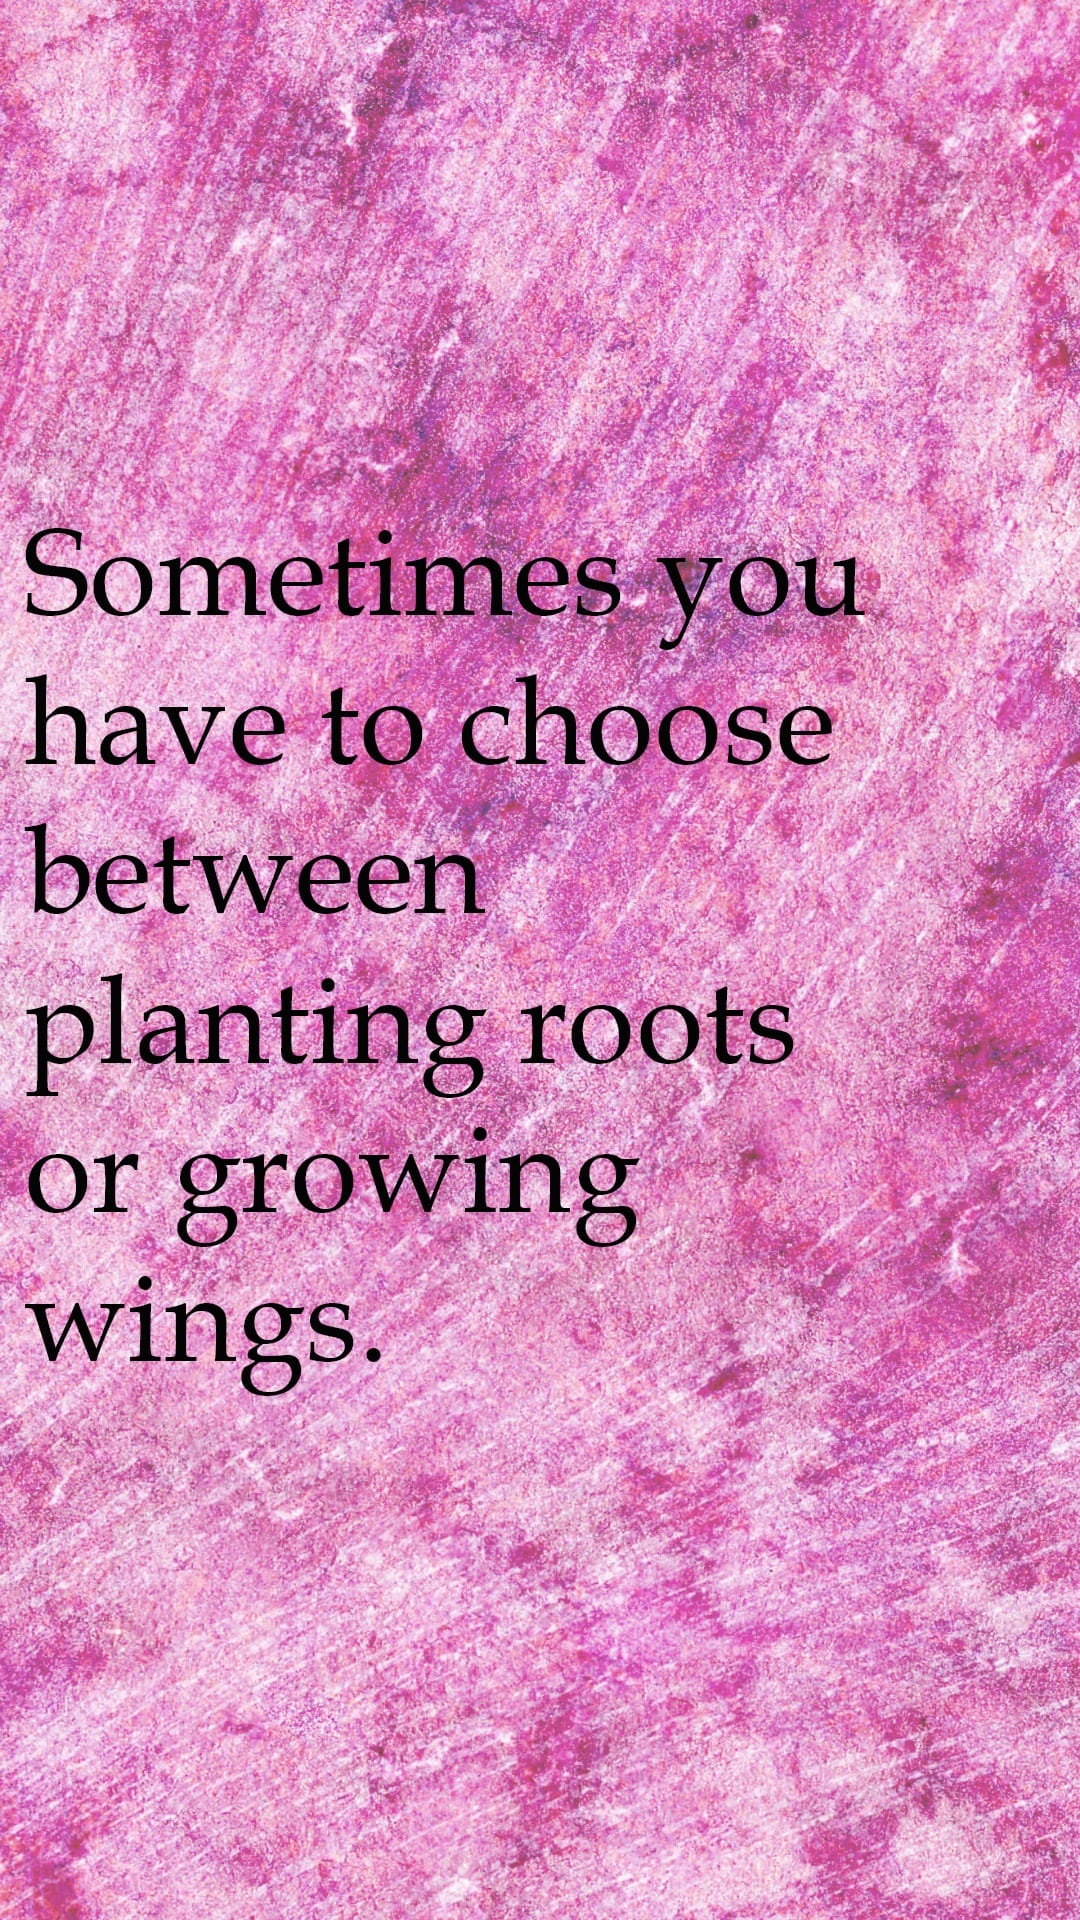 Sometimes you have to choose between planting roots or growing wings